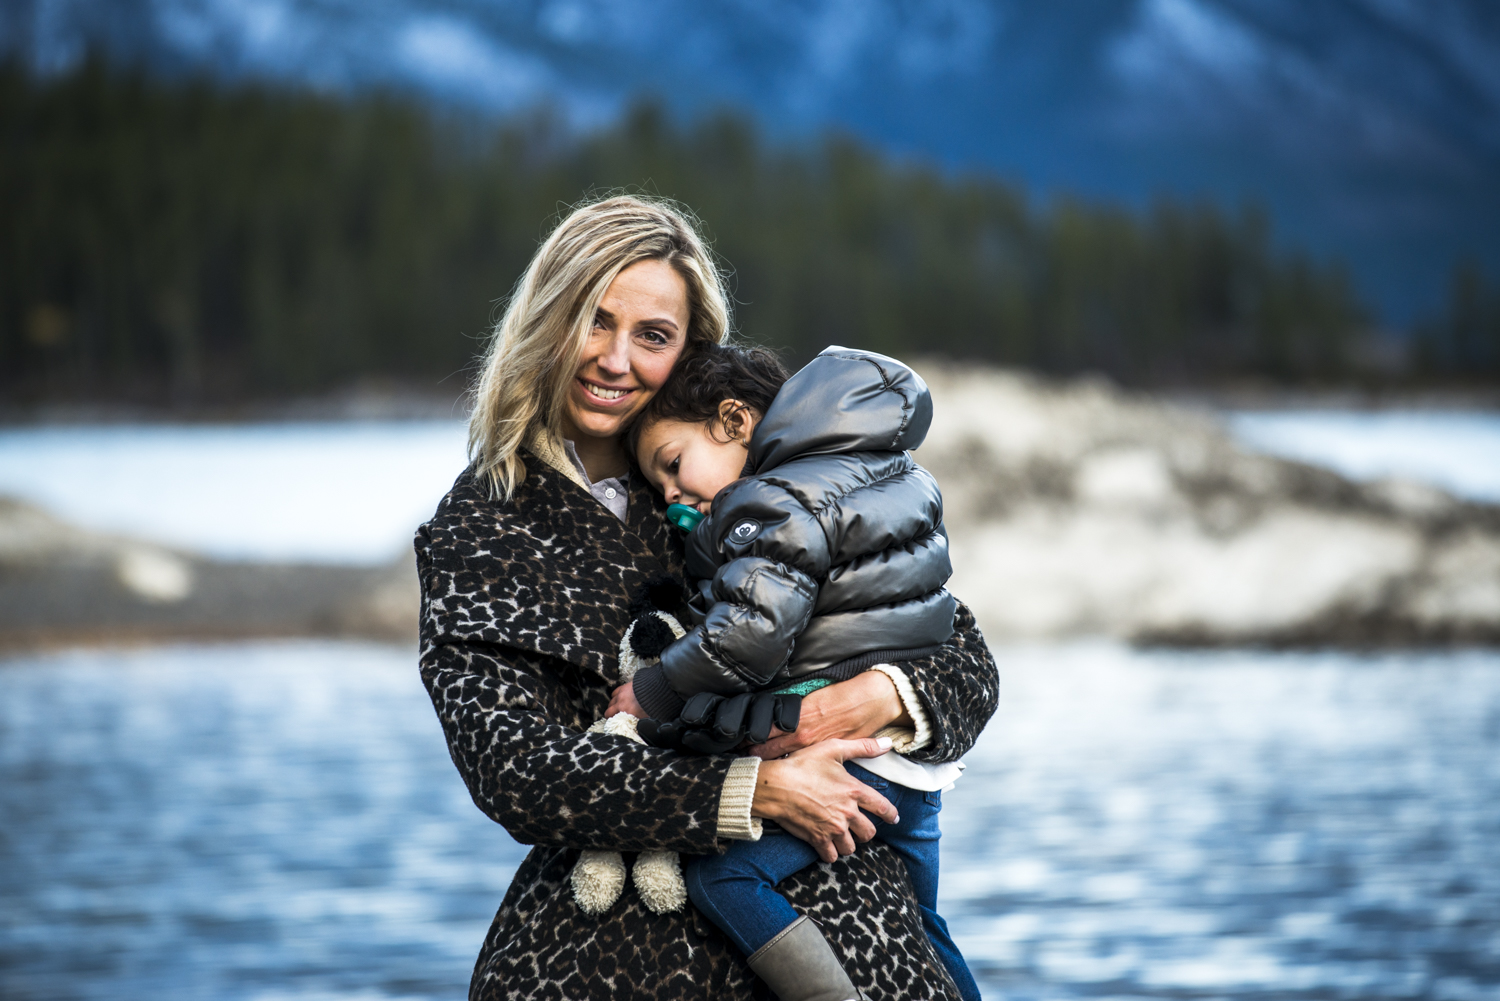 Rachel, Miraj & Charlotte's family photography session at Lake Minnewanka in Banff National Park.